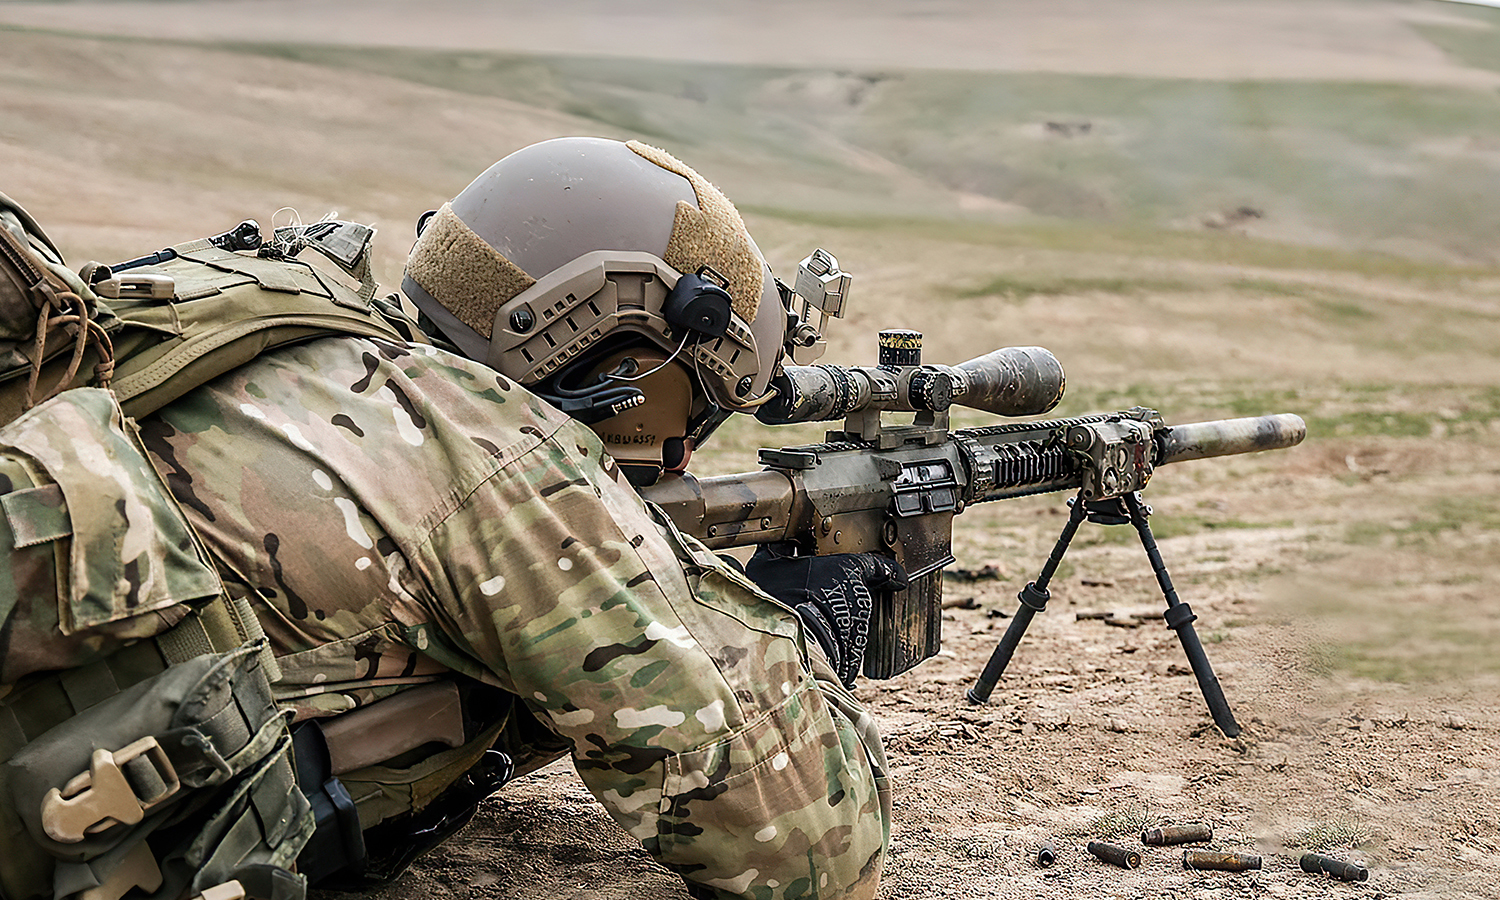 Turkish soldier during military exercises near the Syrian border - 2020 (Shutterstock)